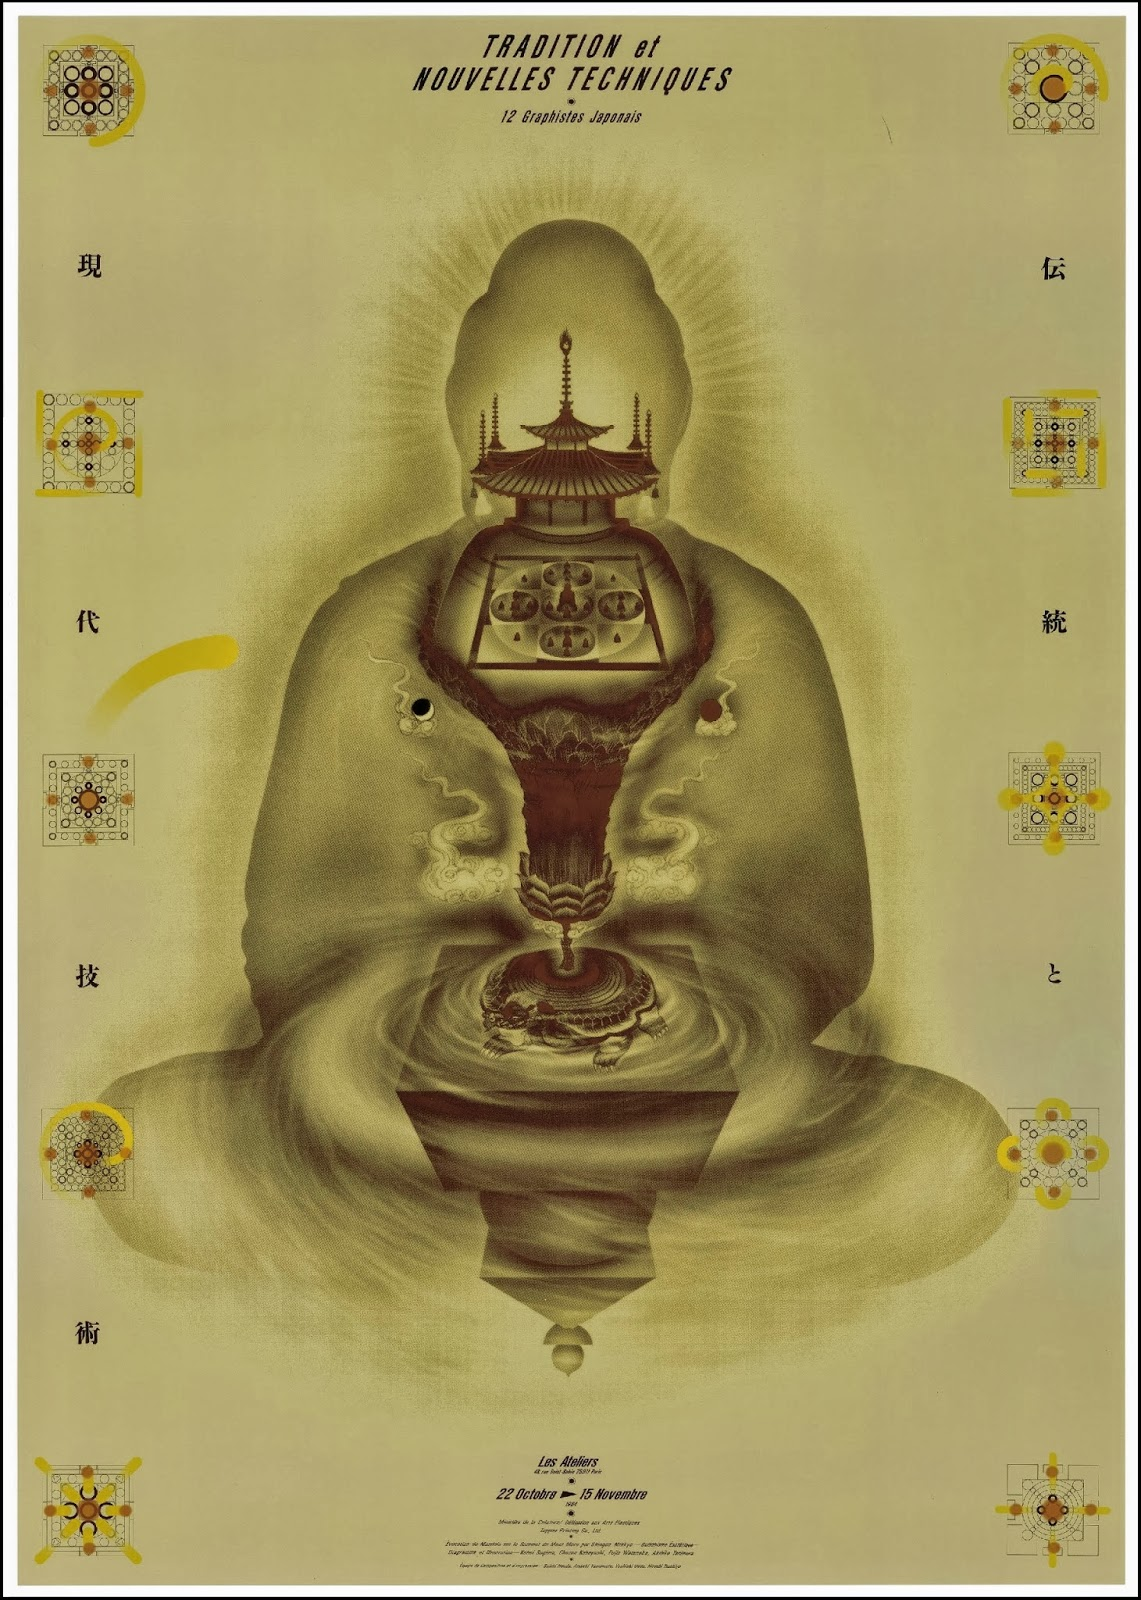 graphics poster in japan with background Buddha figure holding embellished lotus and building among ethereal smoke